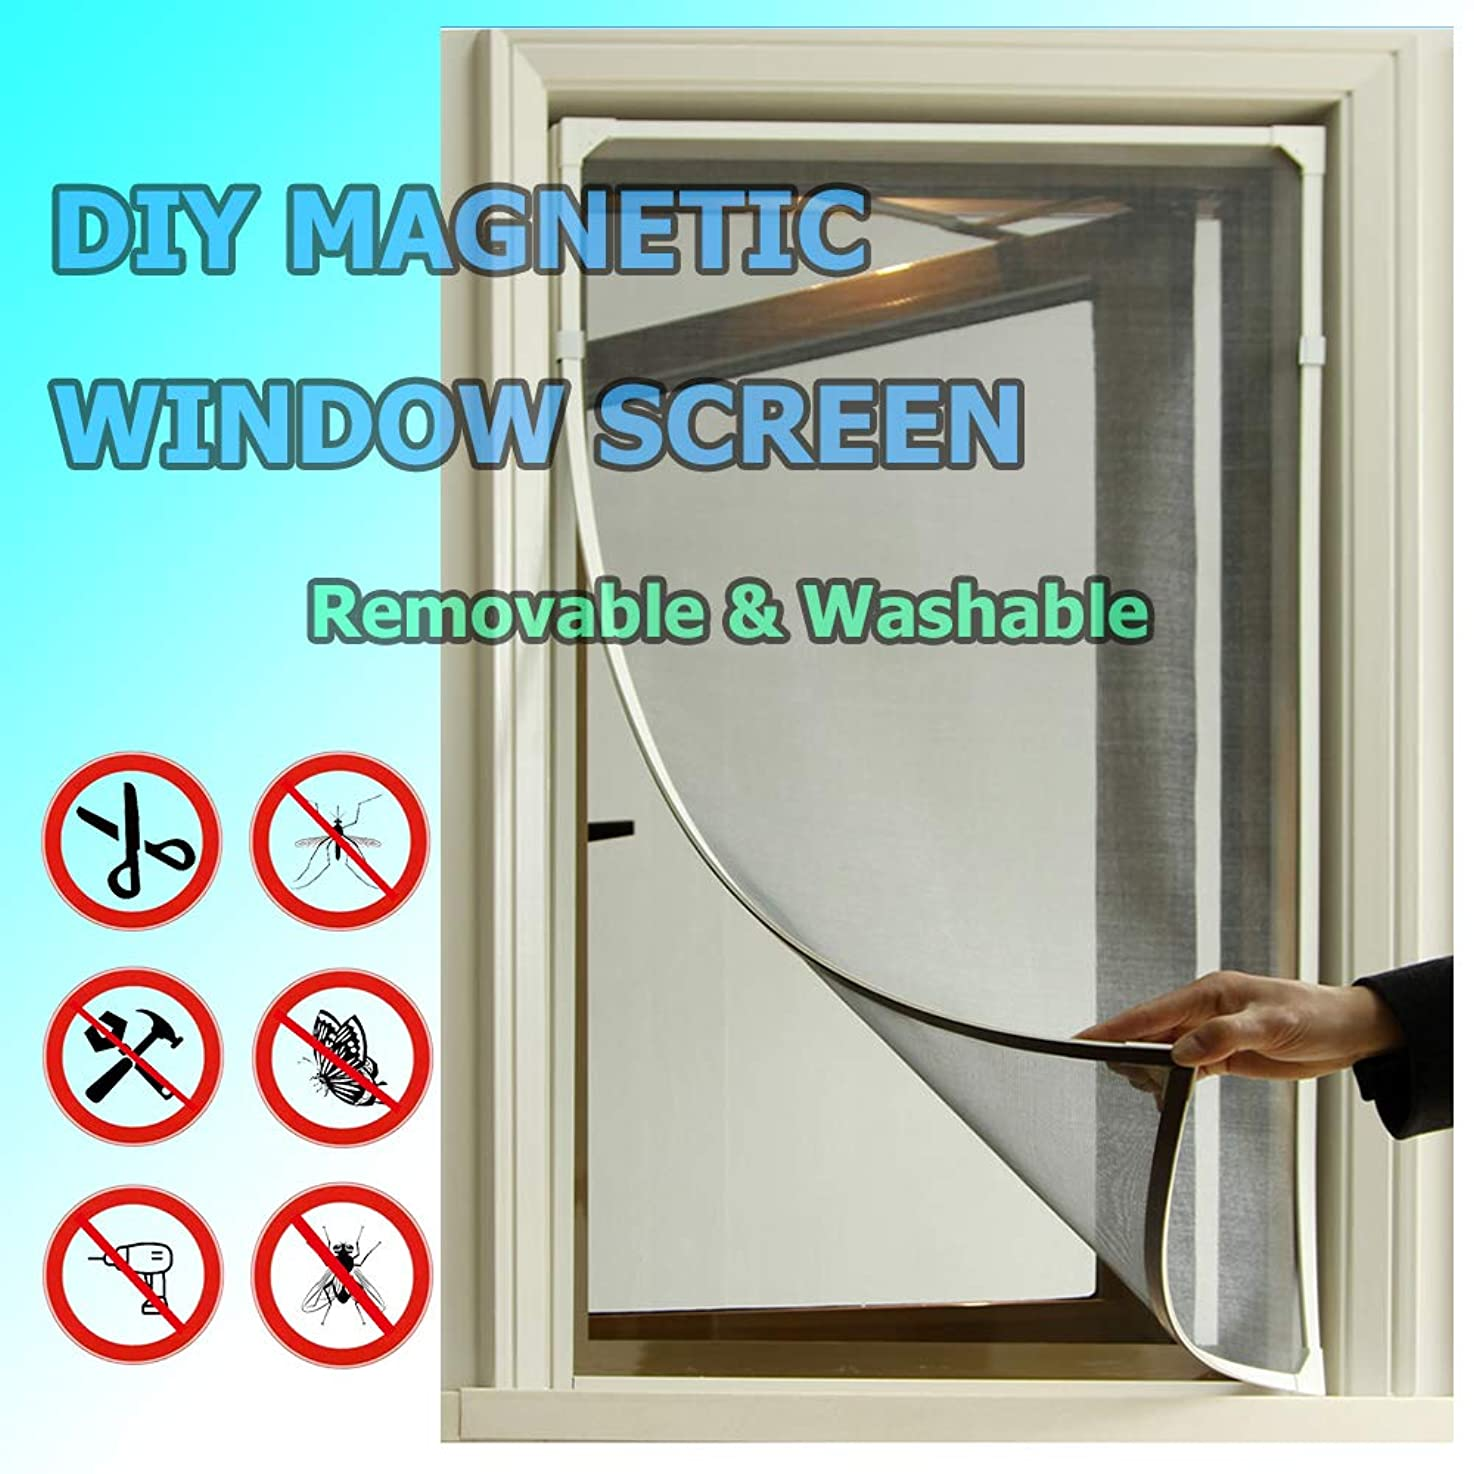 Adjustable DIY Magnetic Window Screen fit windows Up to 48x40 Inch Removable&Washable eibdywcsvawva7